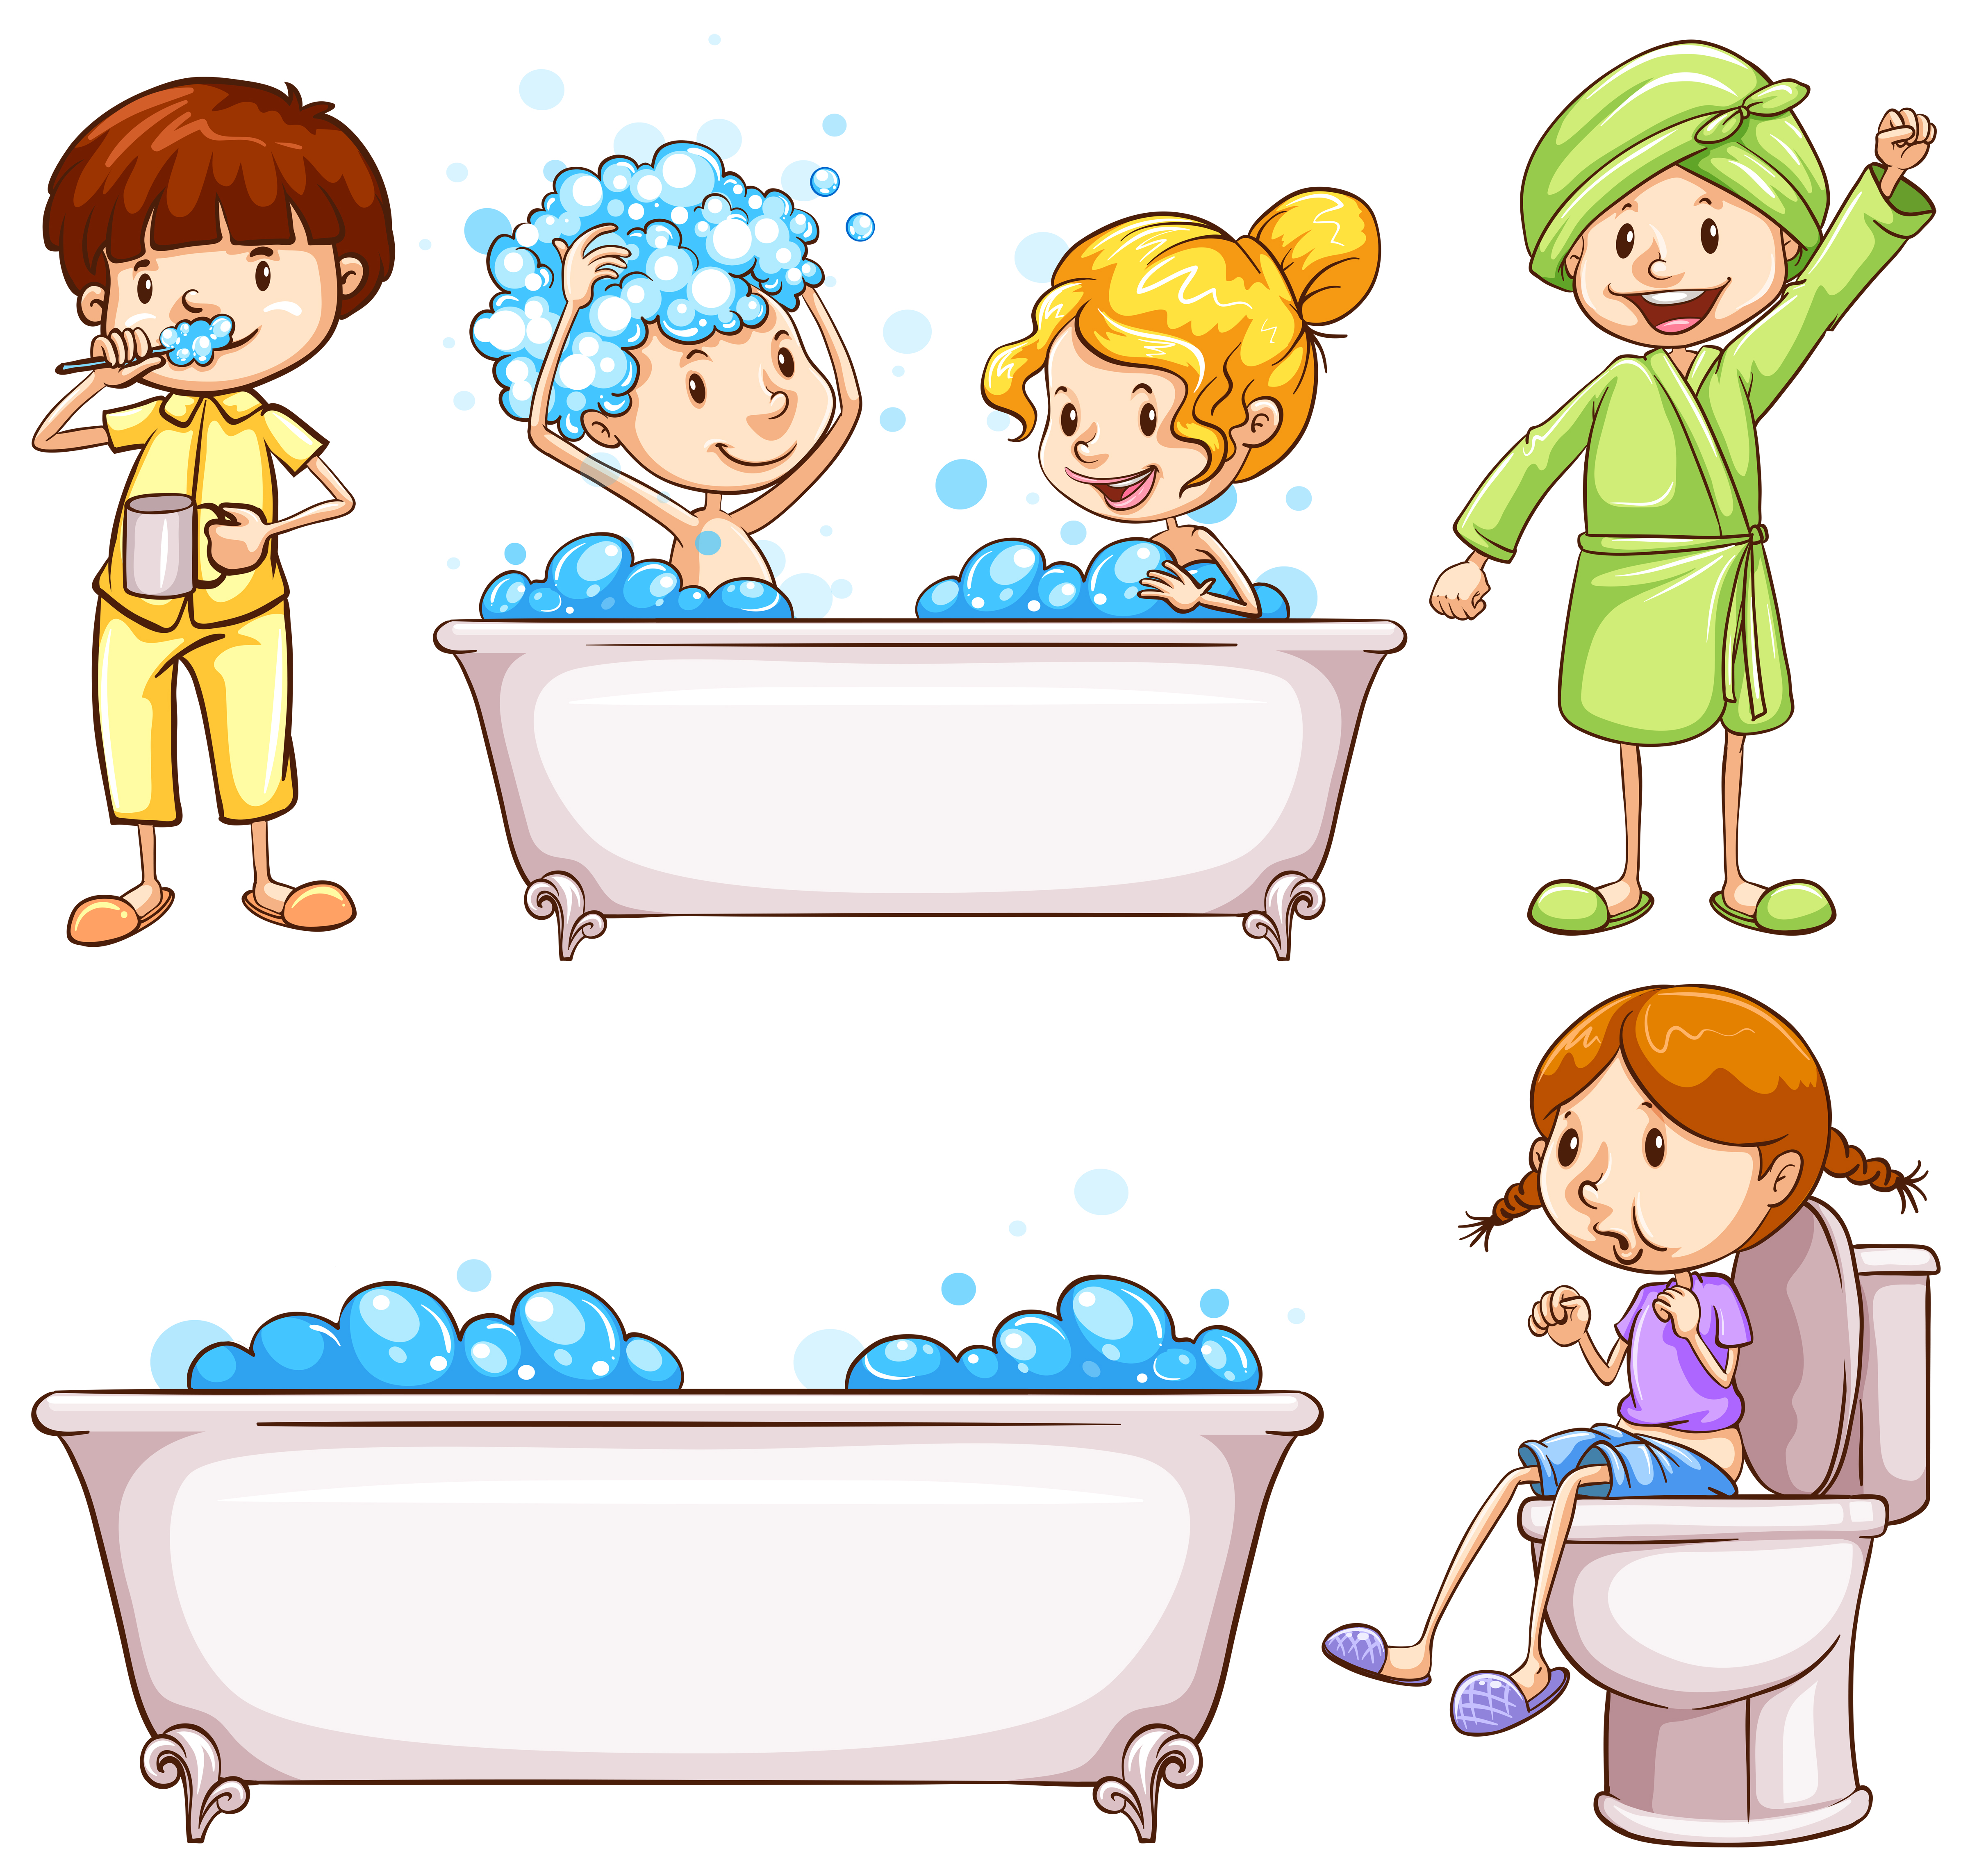 Children Brushing Teeth And Taking Bath Download Free Vectors Clipart Graphics Vector Art